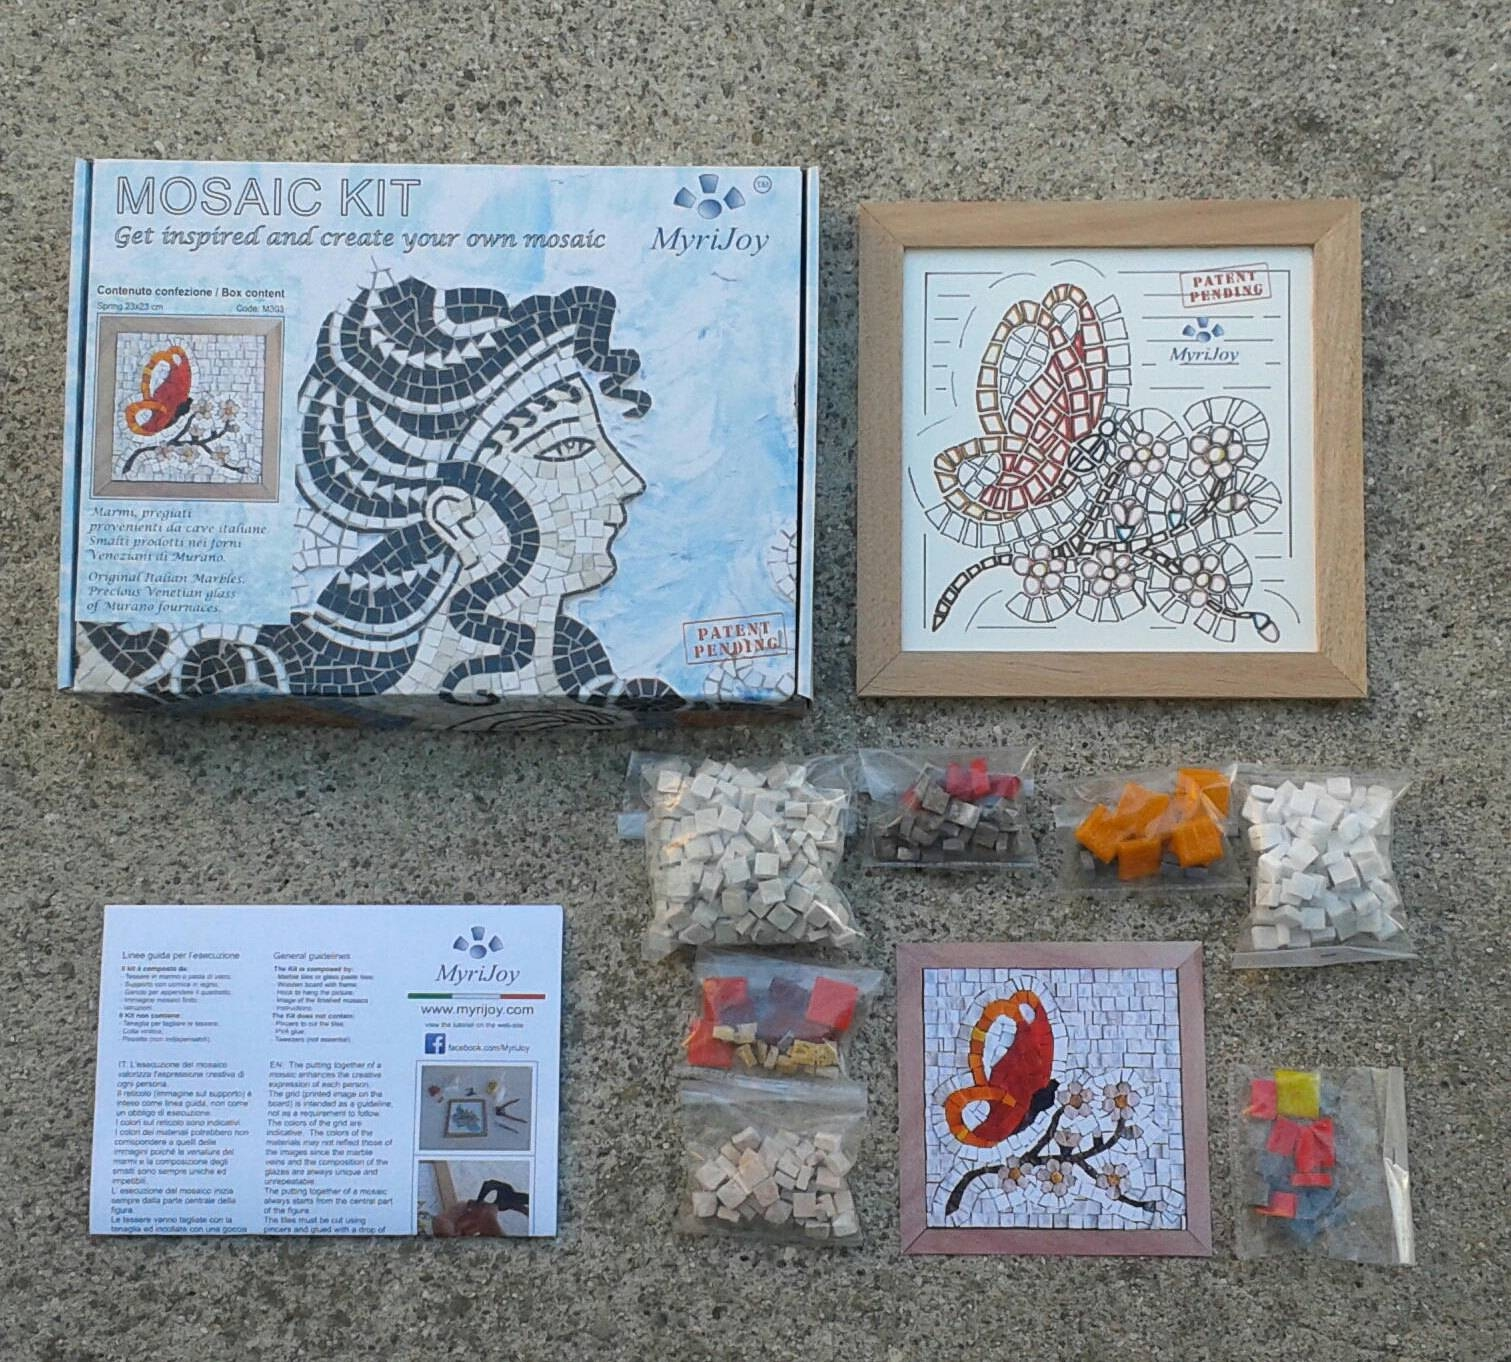 One Of A Kind Gift Mosaic Art Kit Four Seasons Spring – Crafts For Intended For Most Recently Released Mosaic Art Kits For Adults (View 10 of 20)